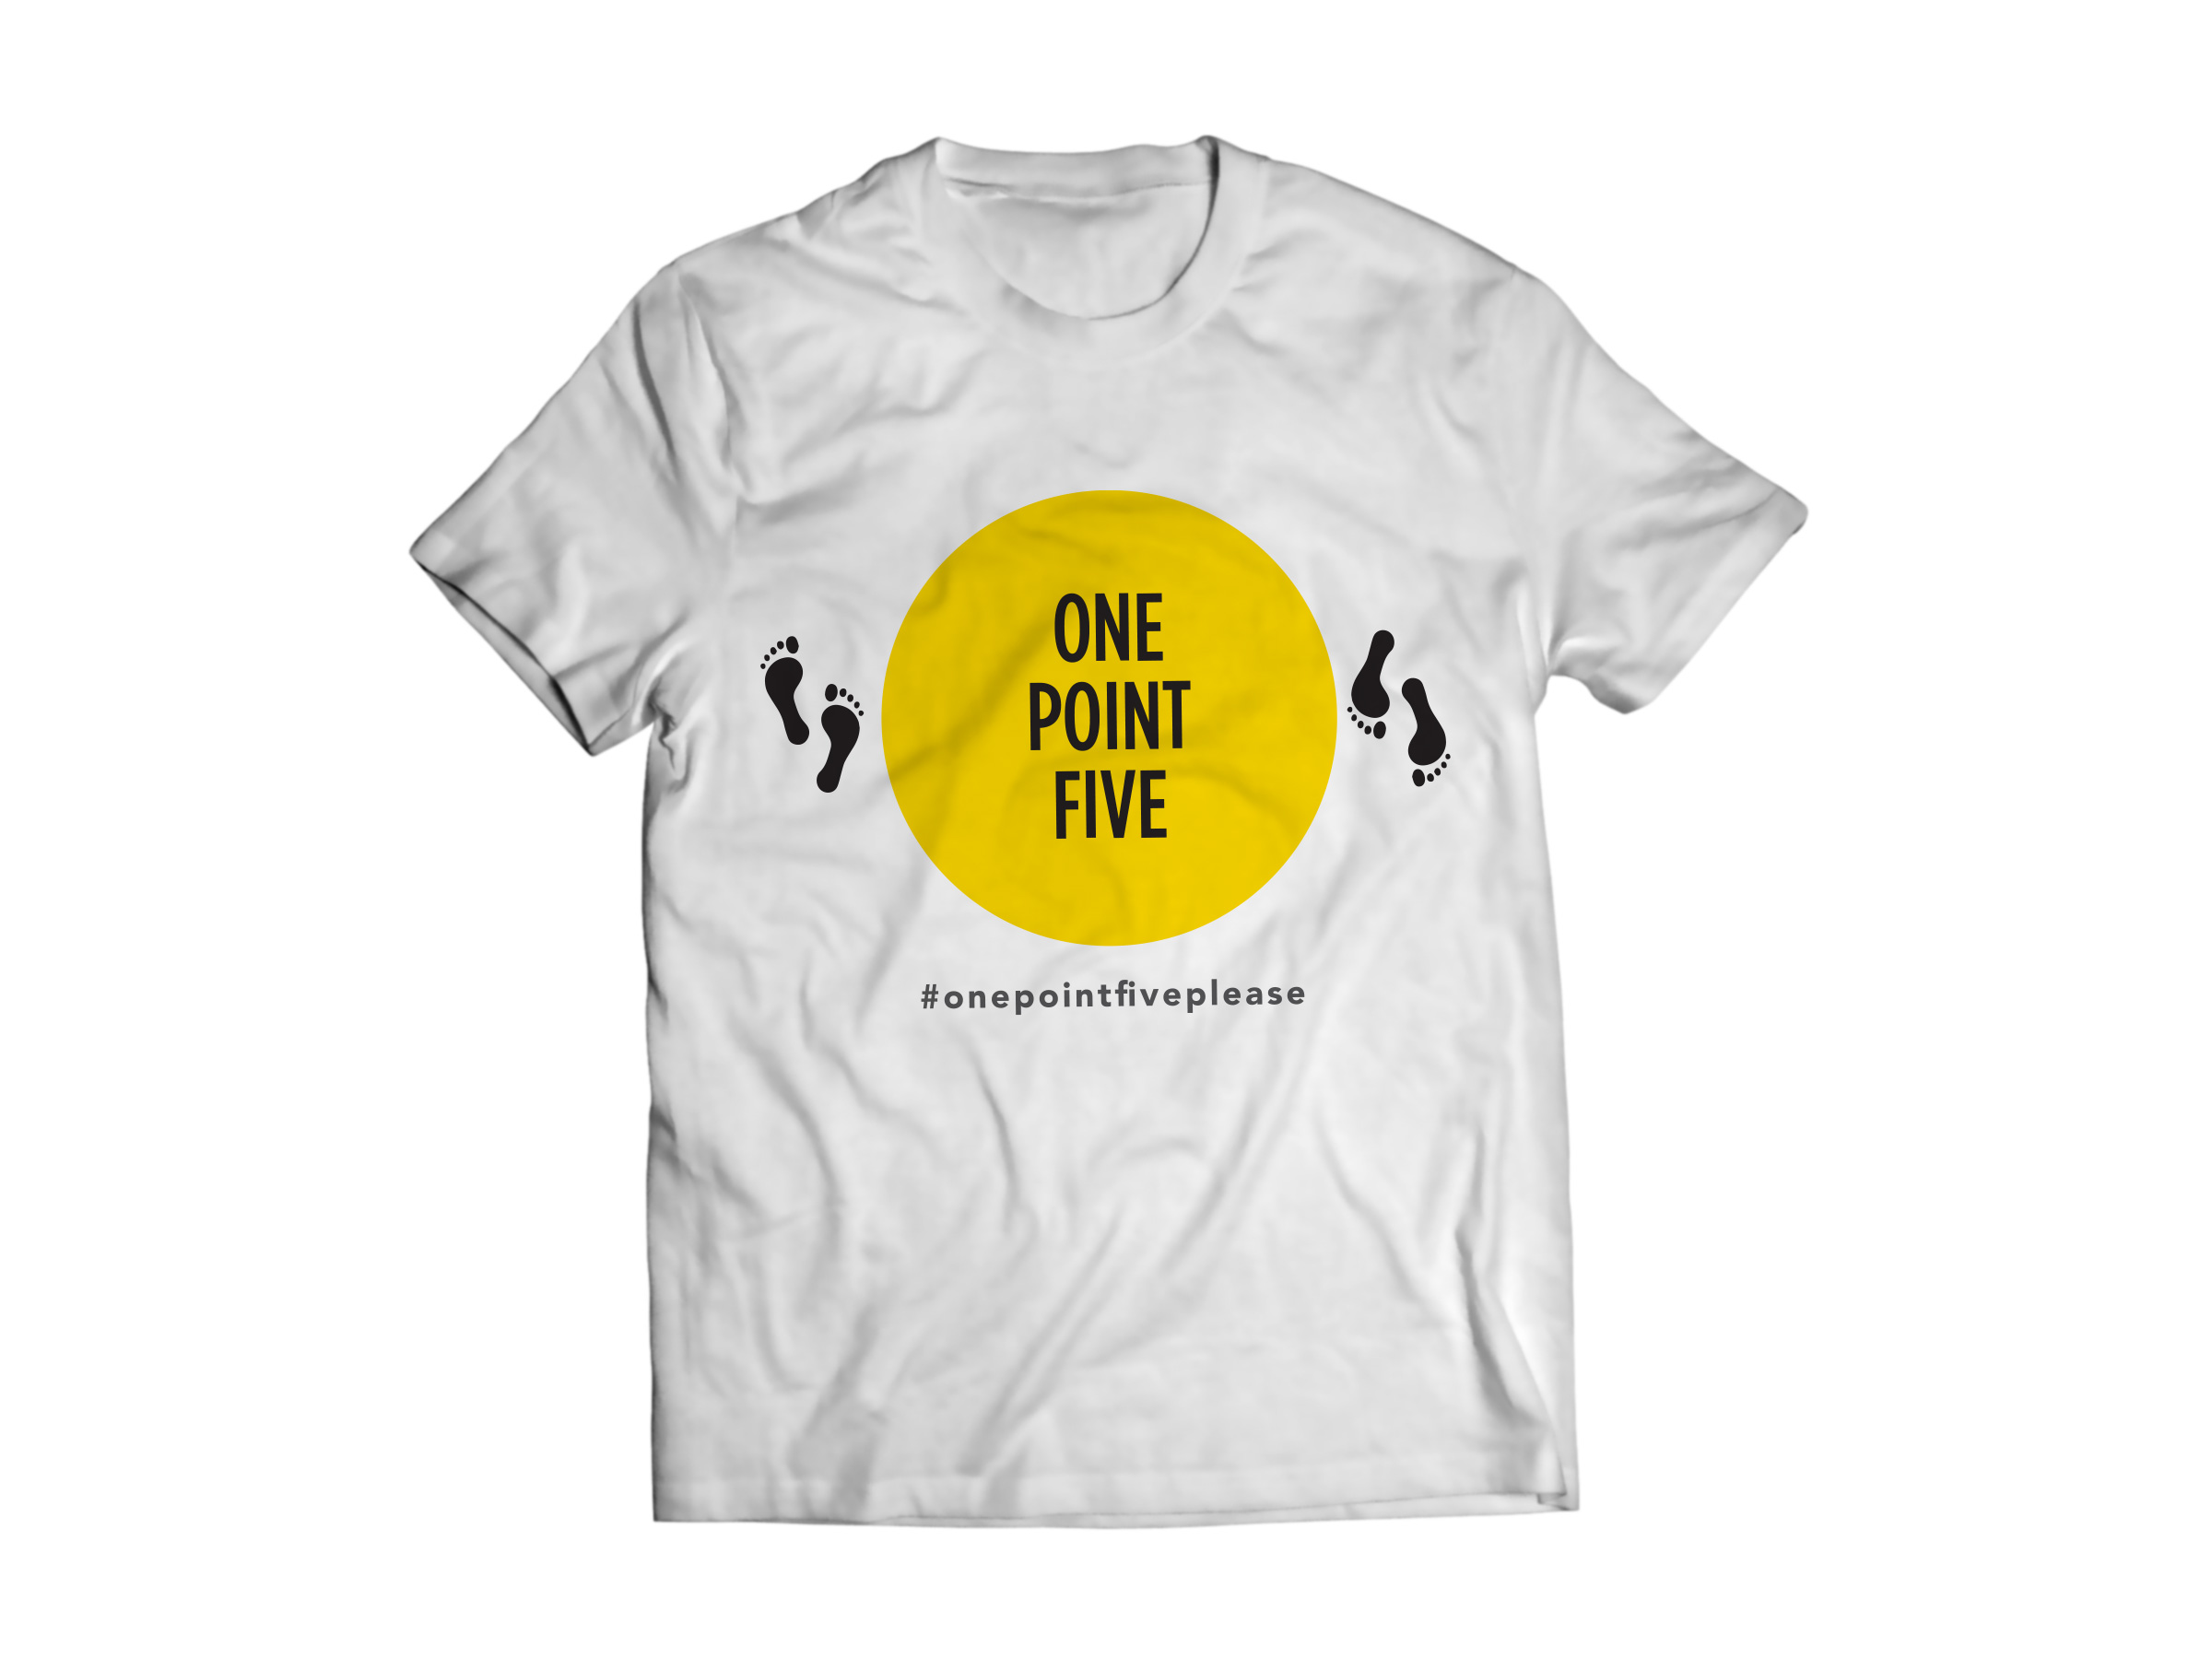 #onepointfiveplease T-Shirt Launches Universal Symbol for Social Distancing